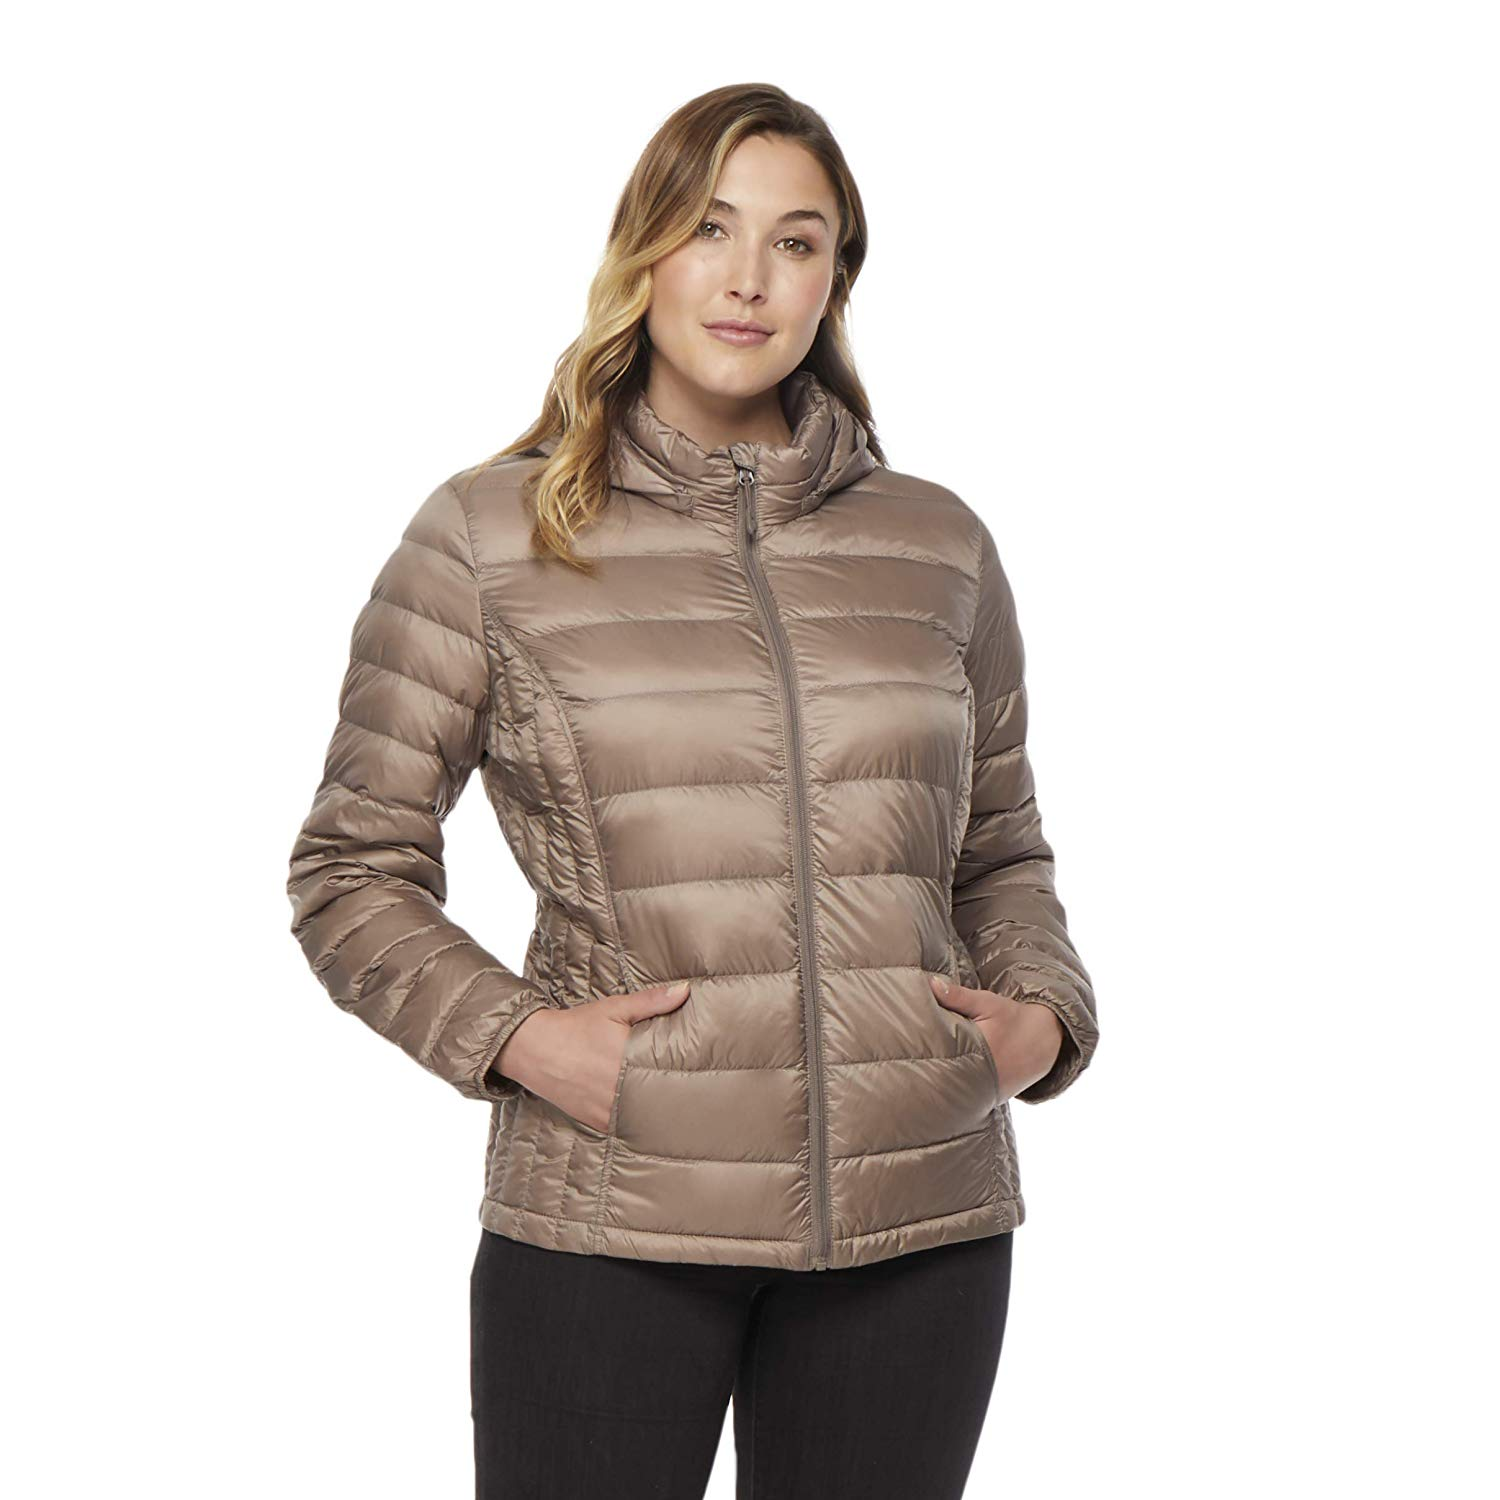 085a3c1e564 Get Quotations · 32 DEGREES Womens Plus Ultra -Light Hooded Down Packable  Jacket